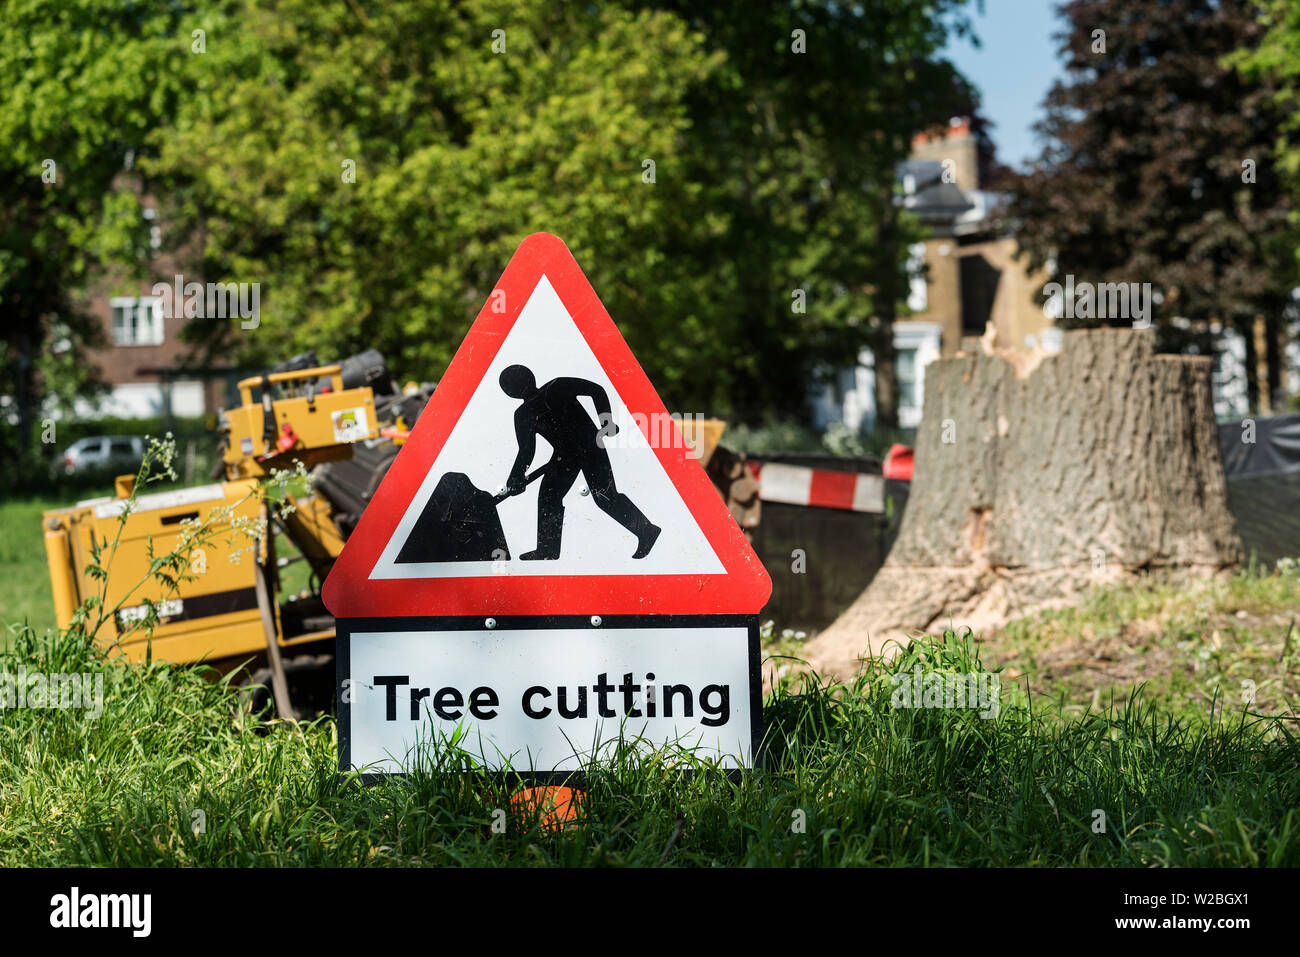 A sign warns of the hazardous area around tree cutting and a stump grinder. - Stock Image